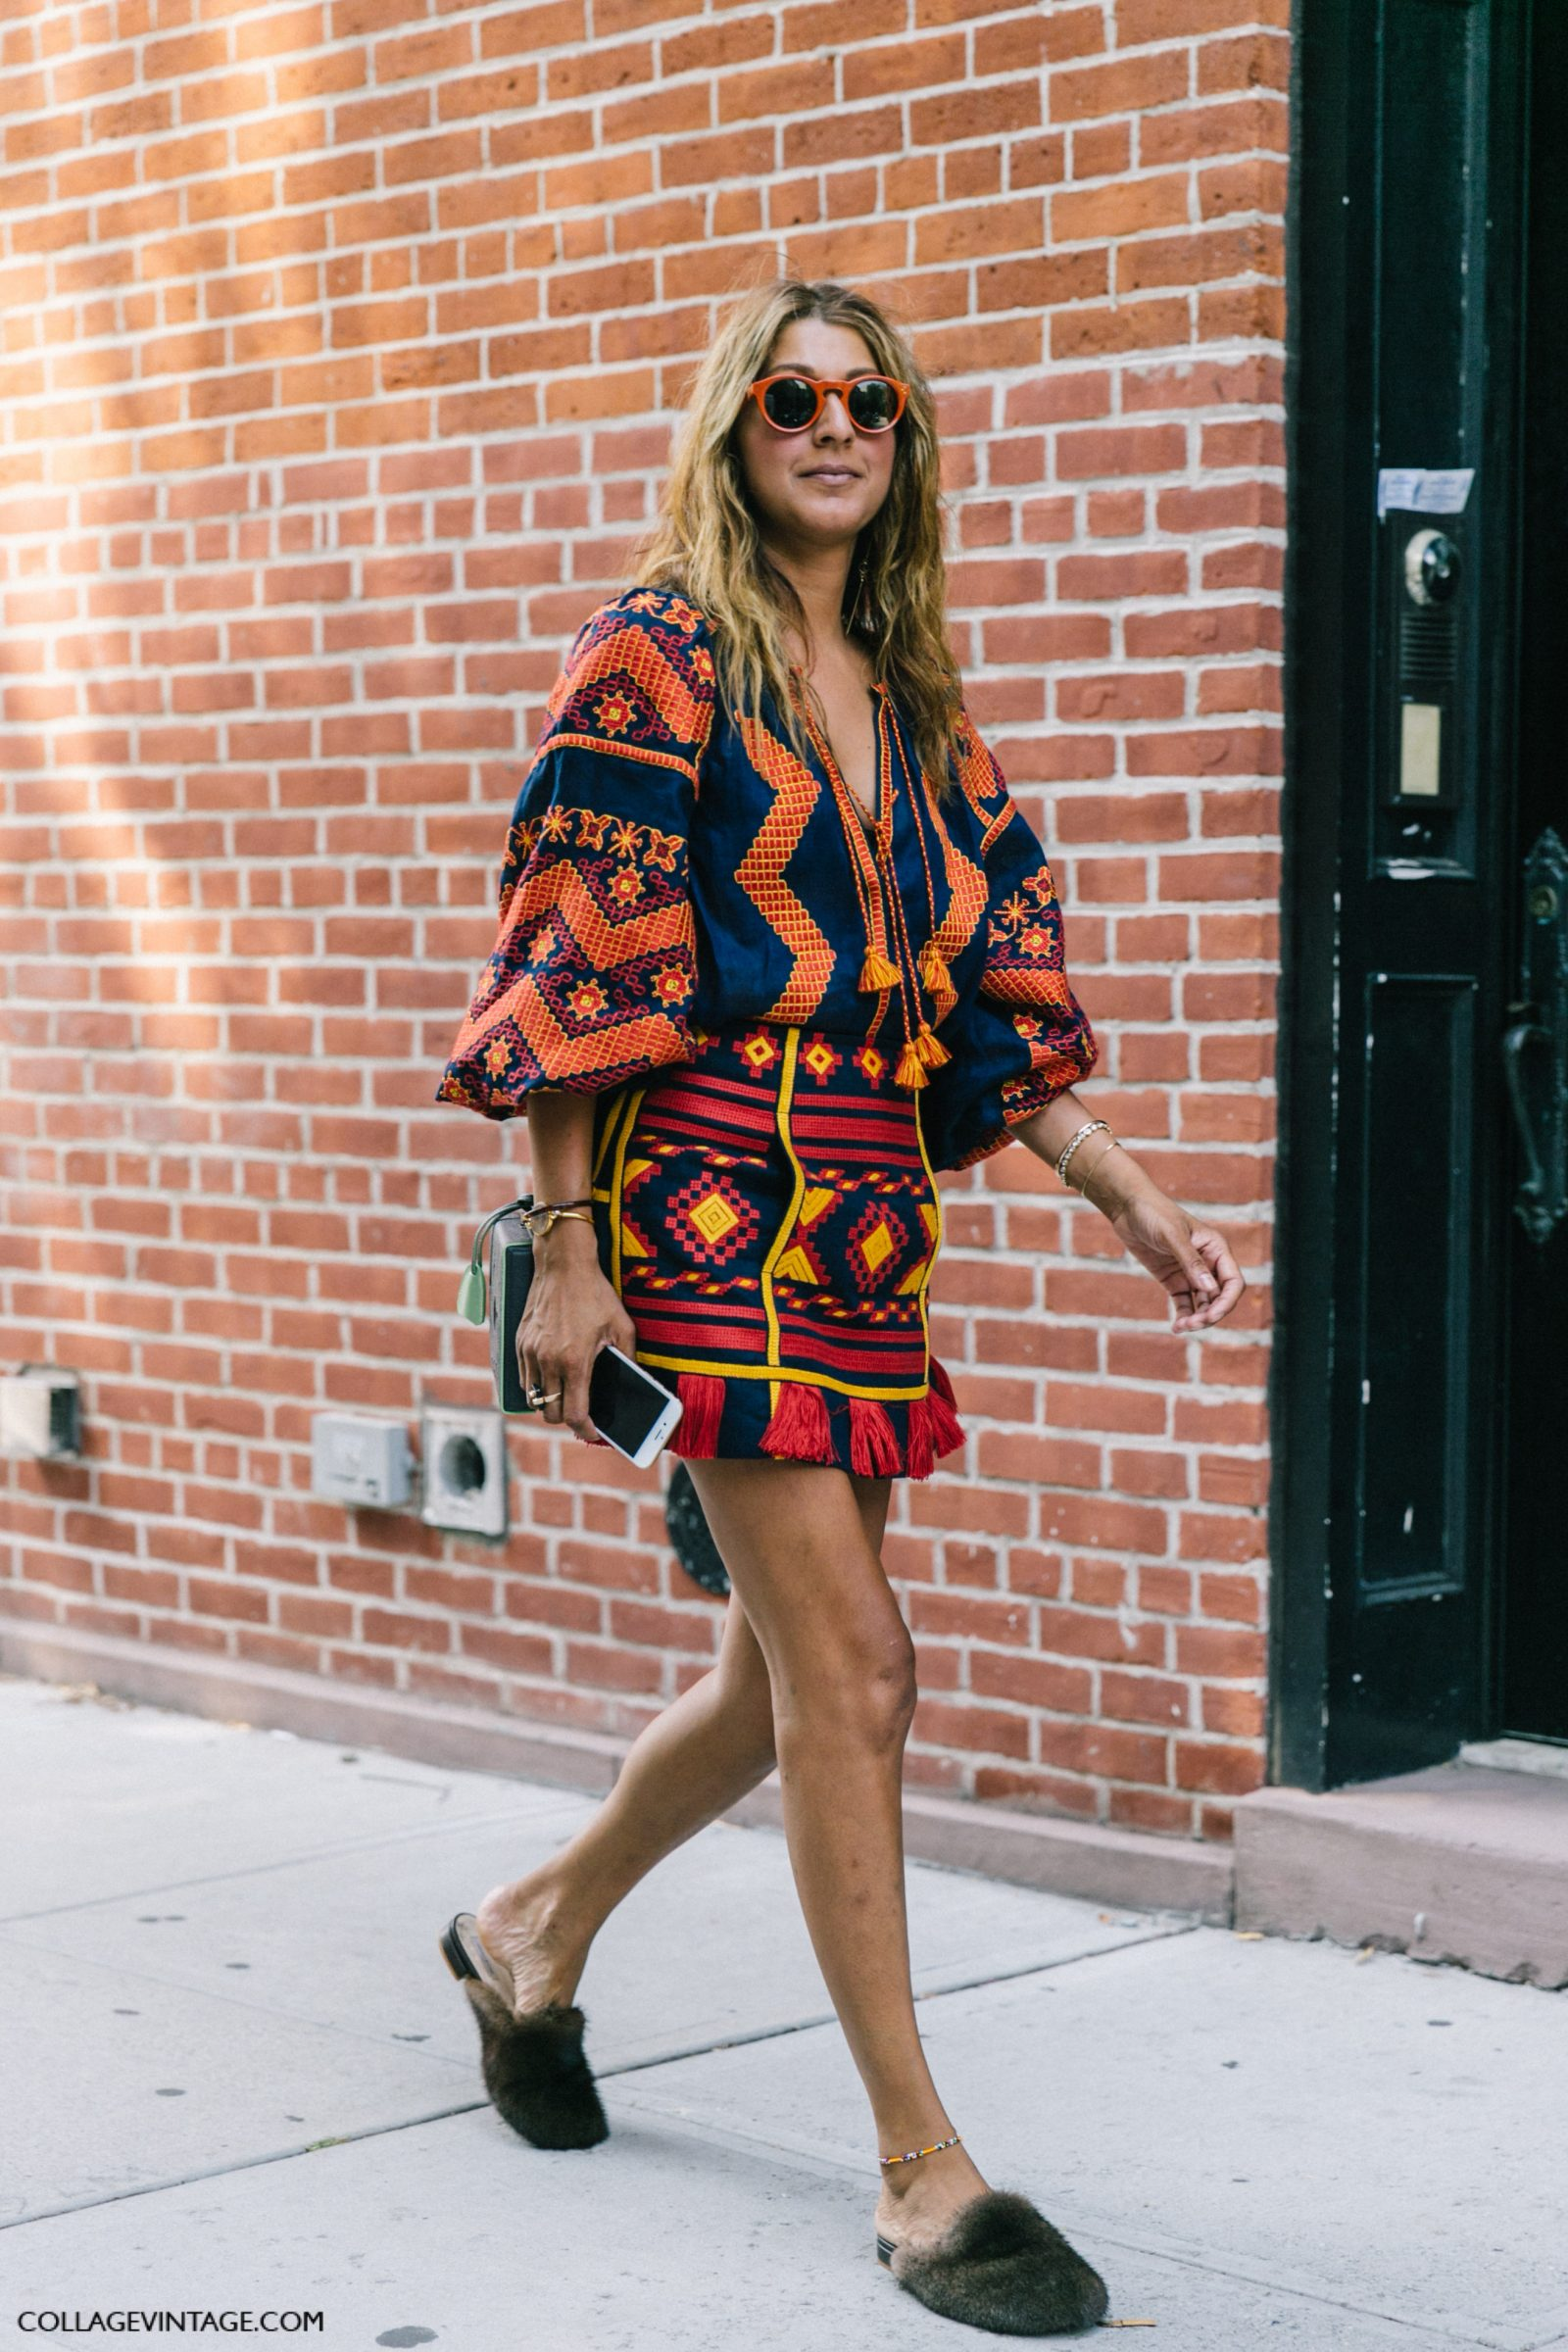 nyfw-new_york_fashion_week_ss17-street_style-outfits-collage_vintage